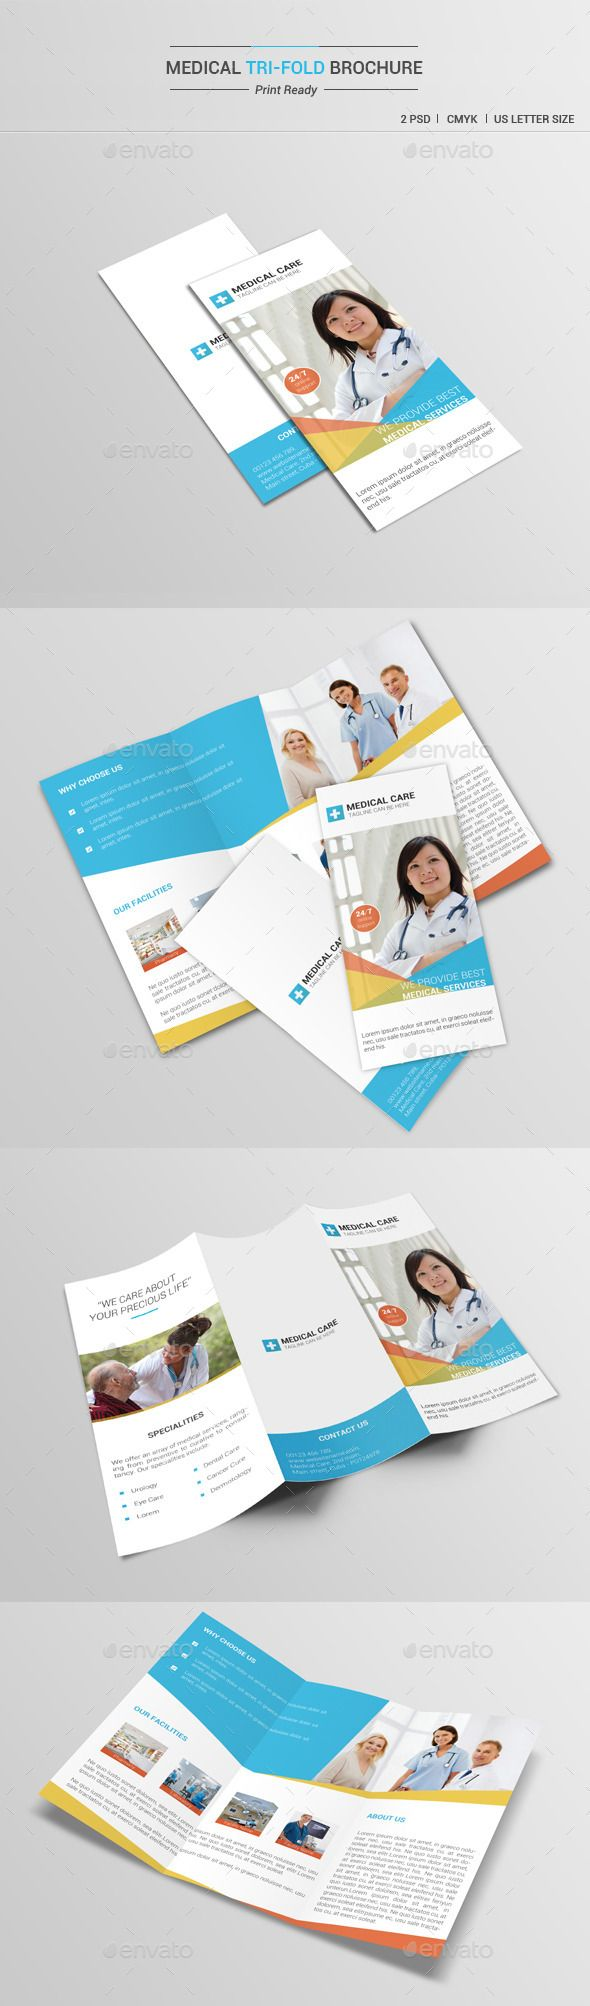 Medical Tri-Fold Brochure Template #printdesign #brochure Download: http://graphicriver.net/item/medical-trifold-brochure-v1/12064721?ref=ksioks